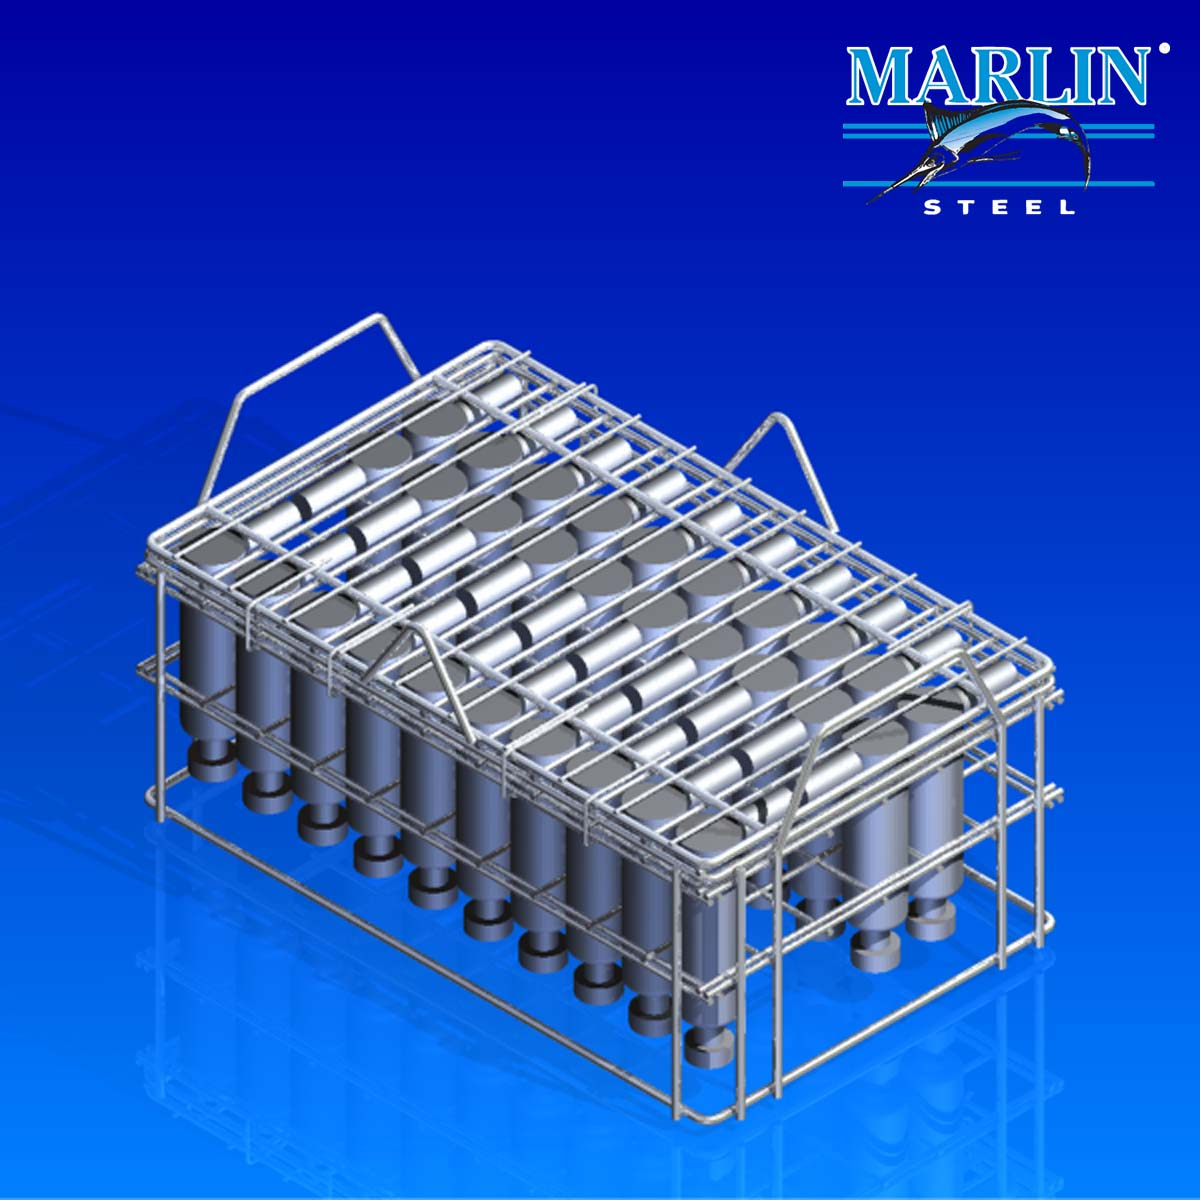 Marlin Steel Wire Basket 791001